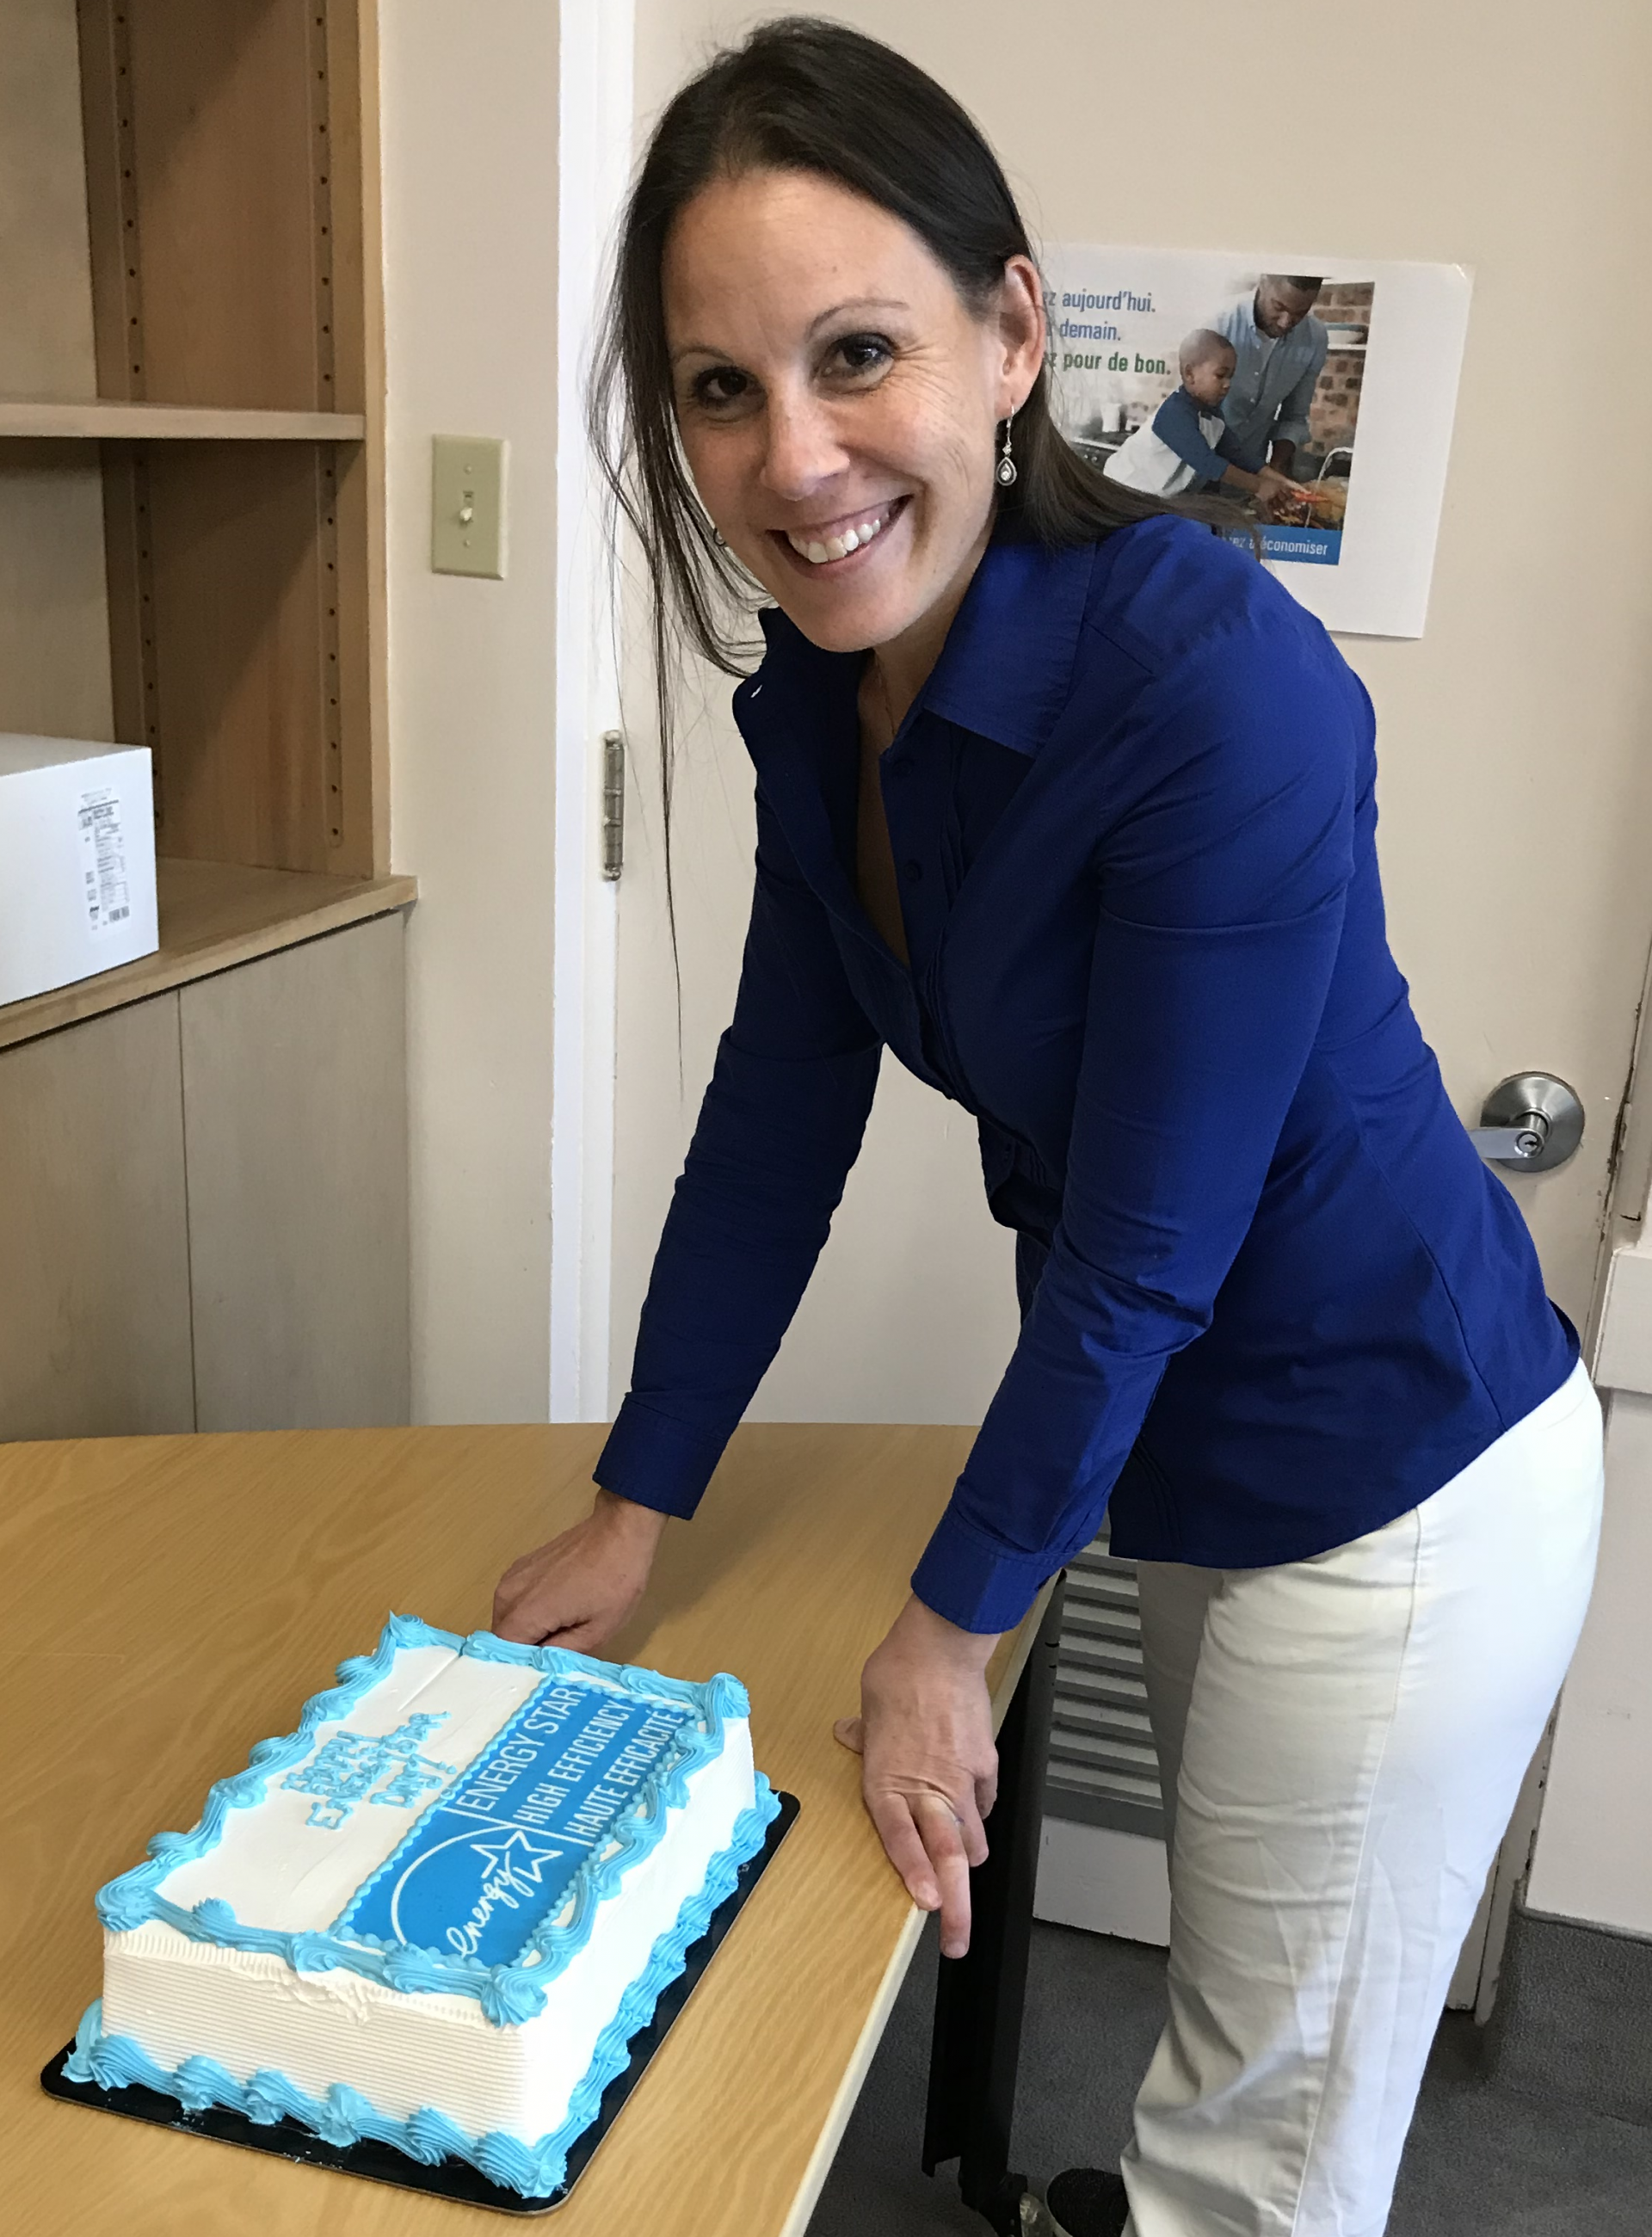 Woman cutting ENERGY STAR cake